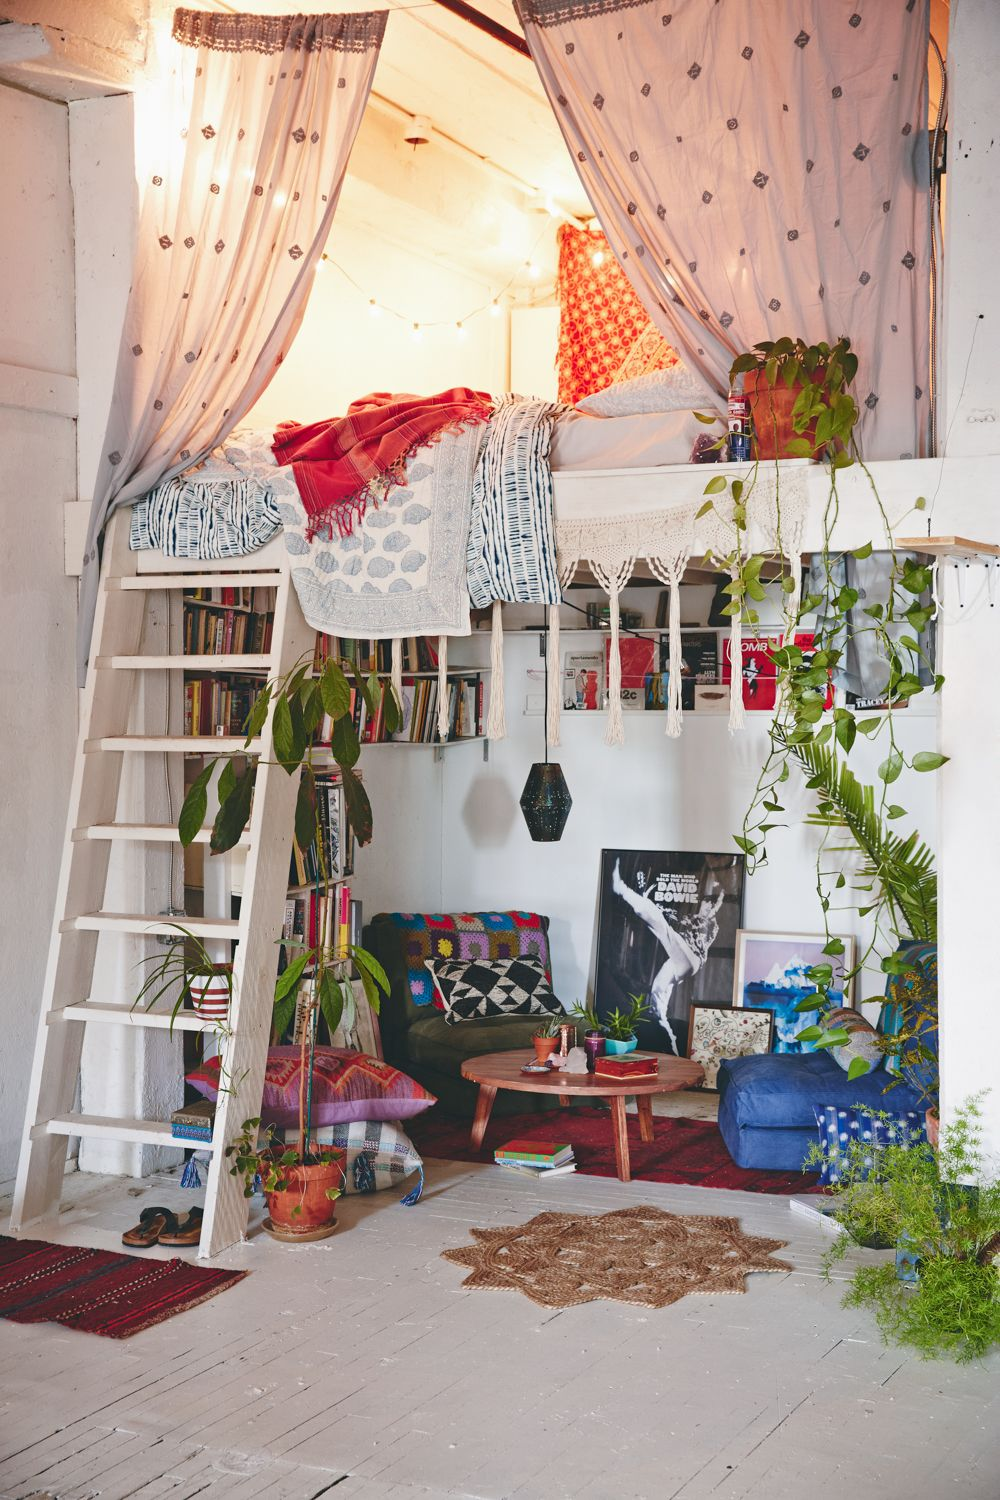 16 loft beds to make your small space feel bigger | bohemian